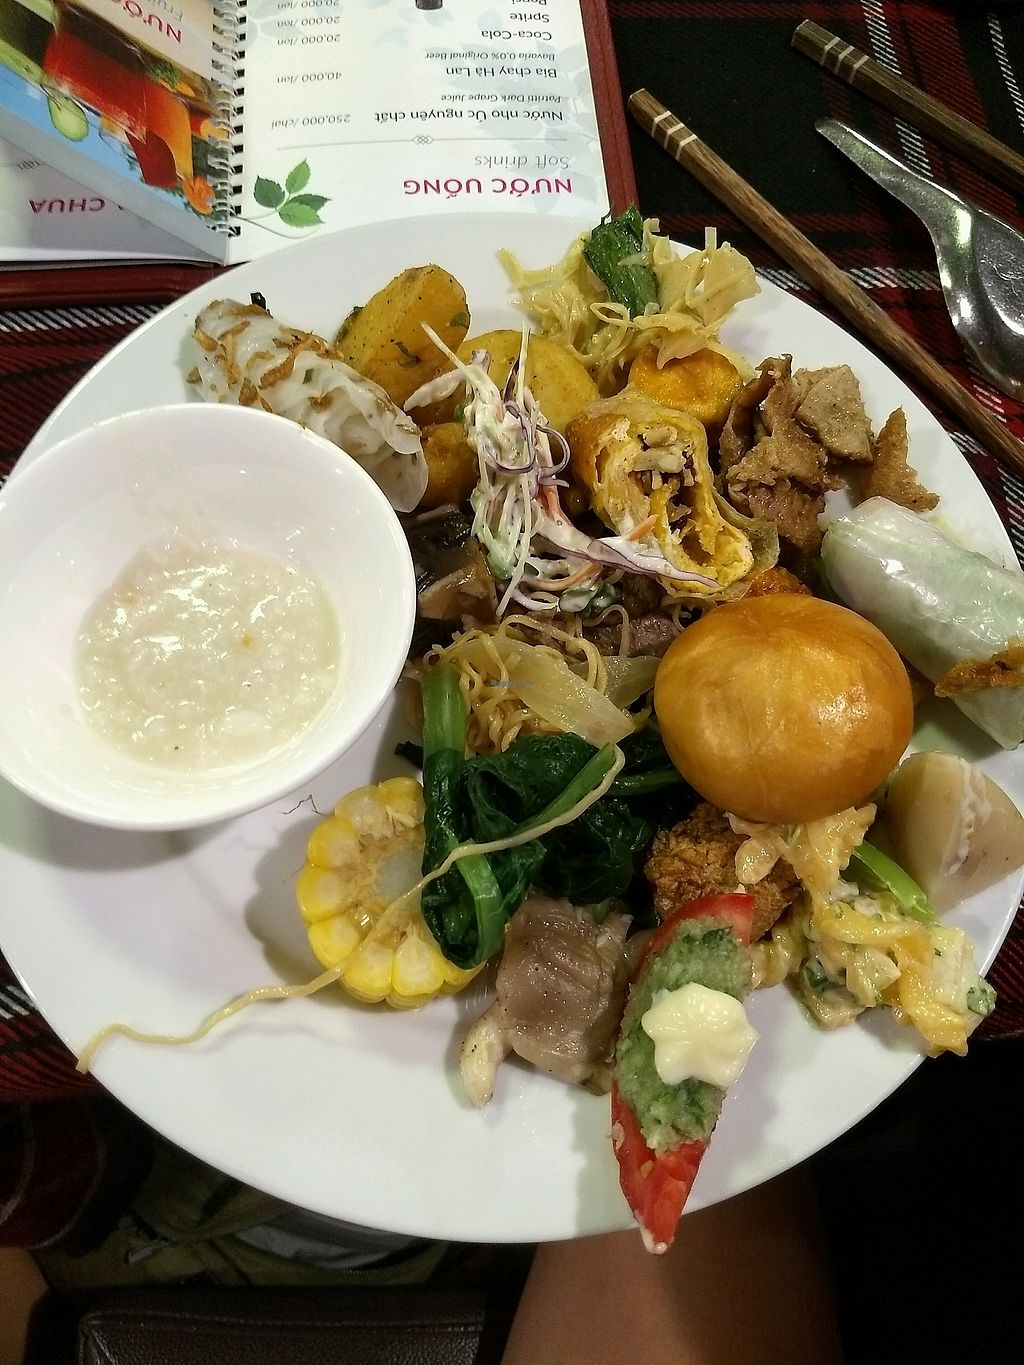 """Photo of An Lac Chay - Hoan Kiem  by <a href=""""/members/profile/mugcake"""">mugcake</a> <br/>Plate of assorted food..loved the porridge! <br/> November 6, 2017  - <a href='/contact/abuse/image/72337/322428'>Report</a>"""